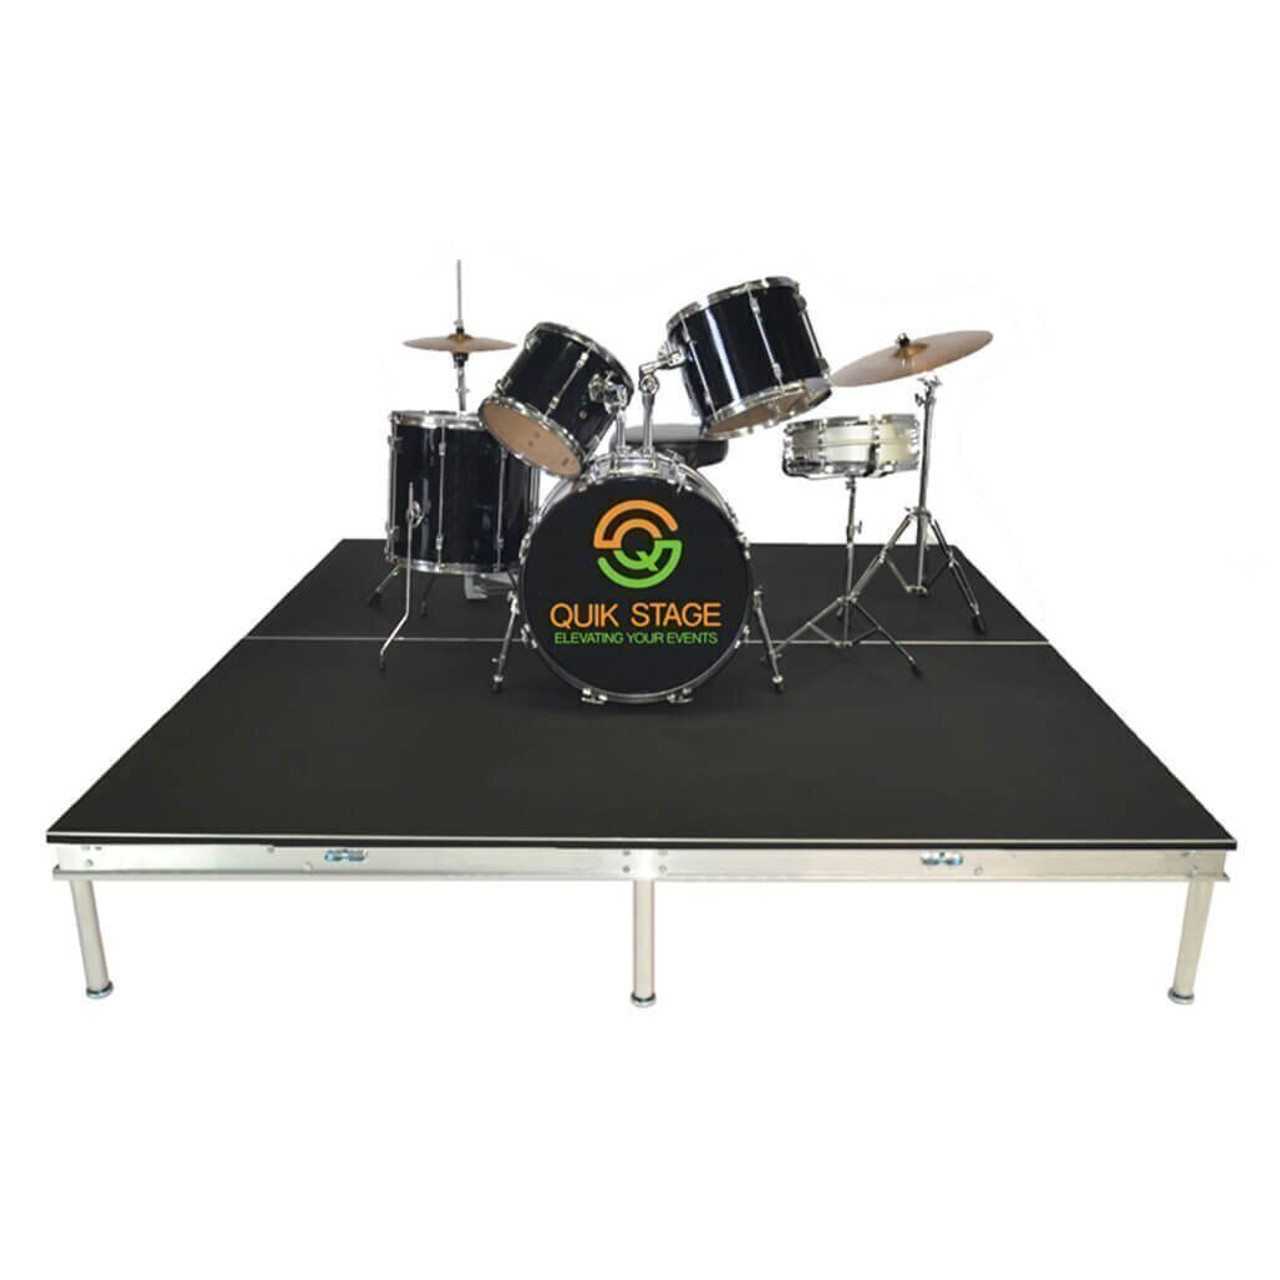 Quik Stage 4' x 40' High Portable Stage Package with Black Polyvinyl Non-Skid Surface. Additional Heights and Surfaces Available - Drum Riser without skirting